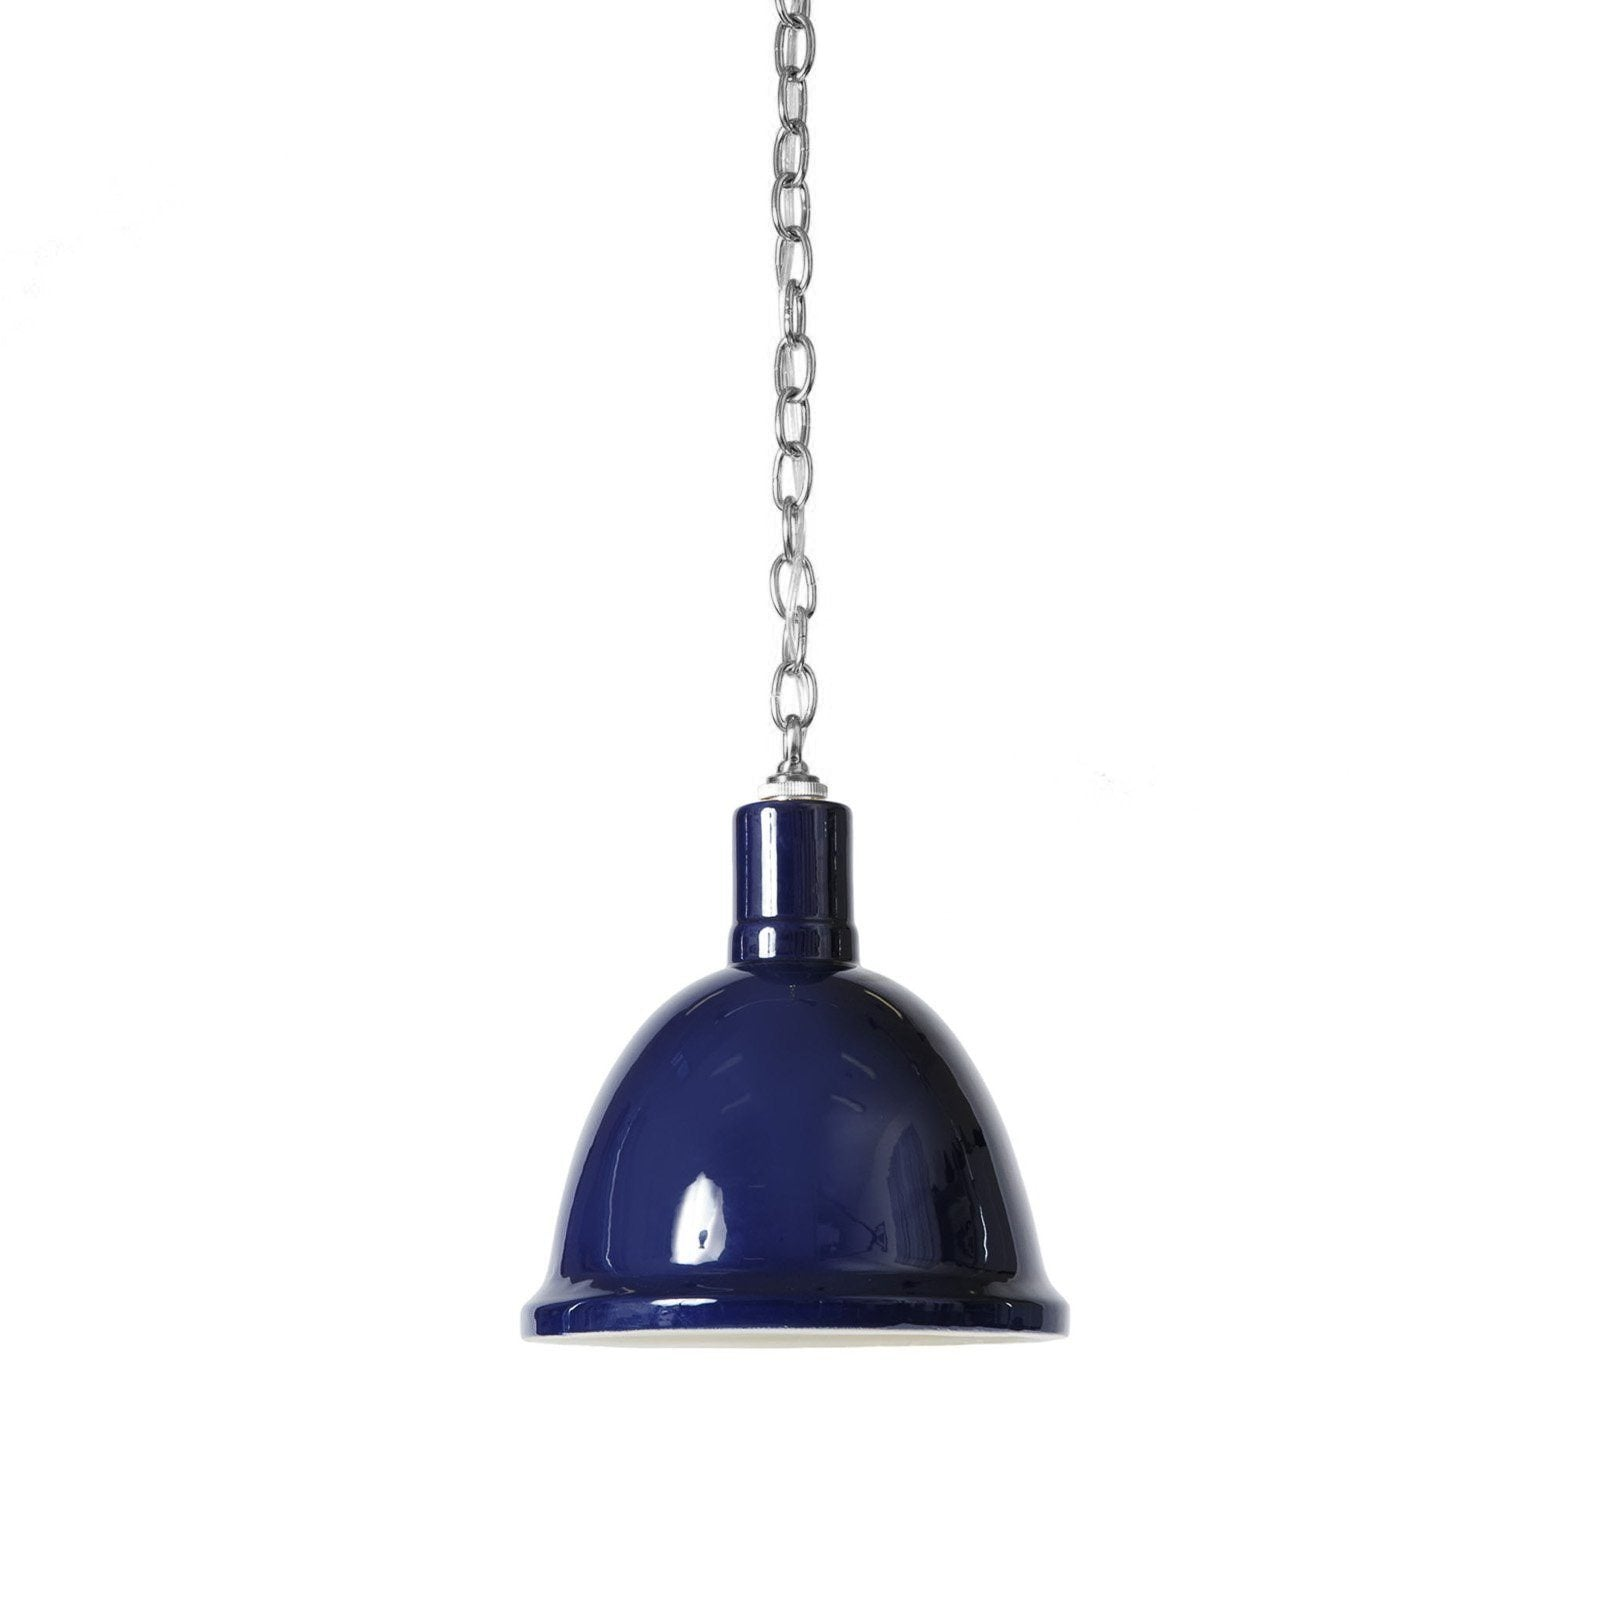 design pendant dome metropolitandecor seed p light